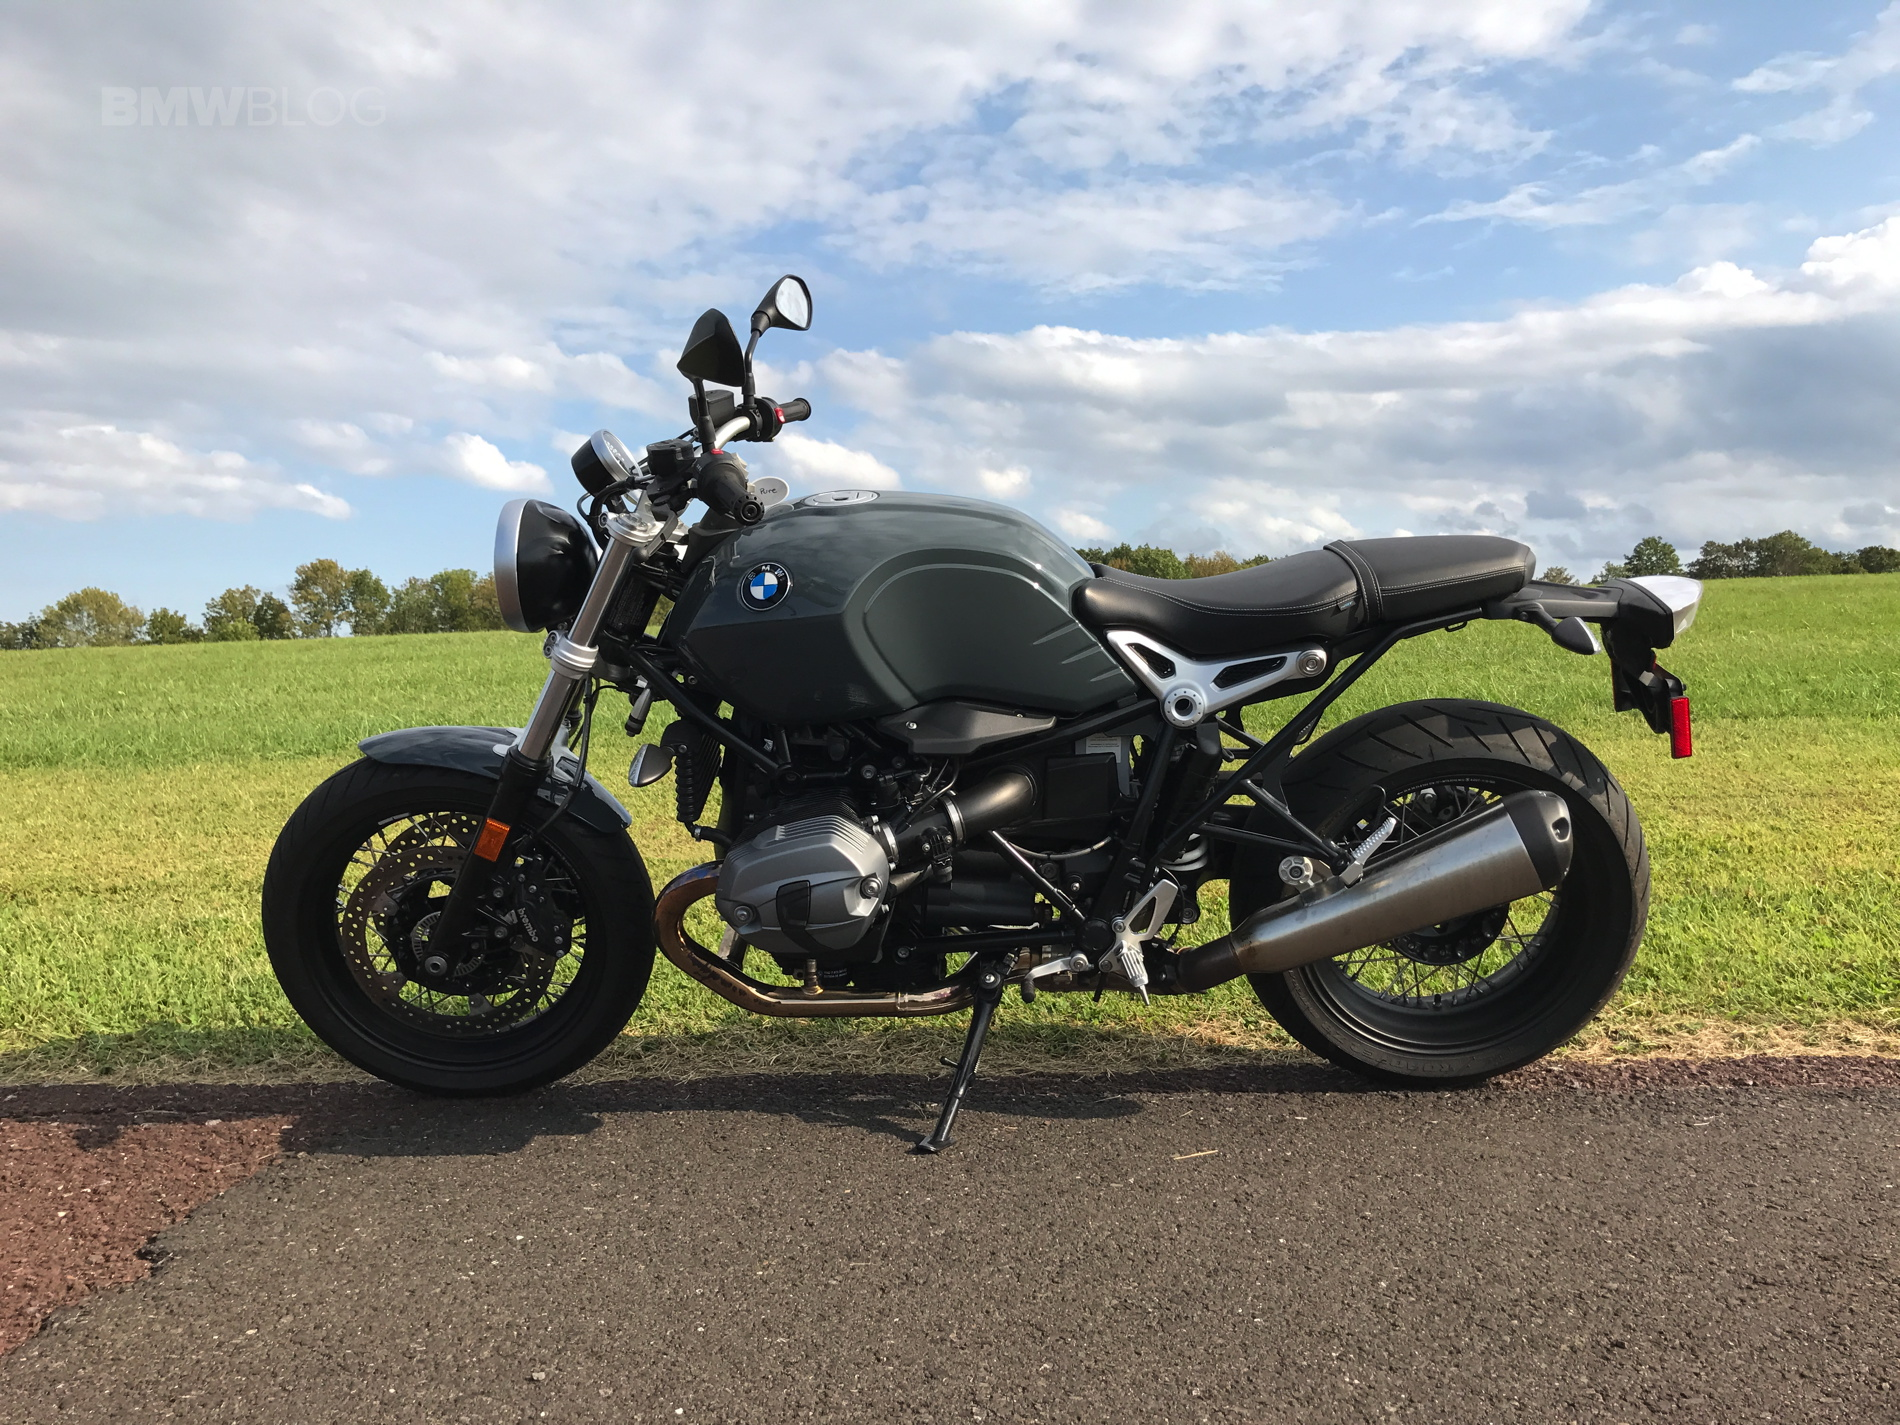 Bmw Nine T Pure >> Drive Review: BMW R nine T Pure